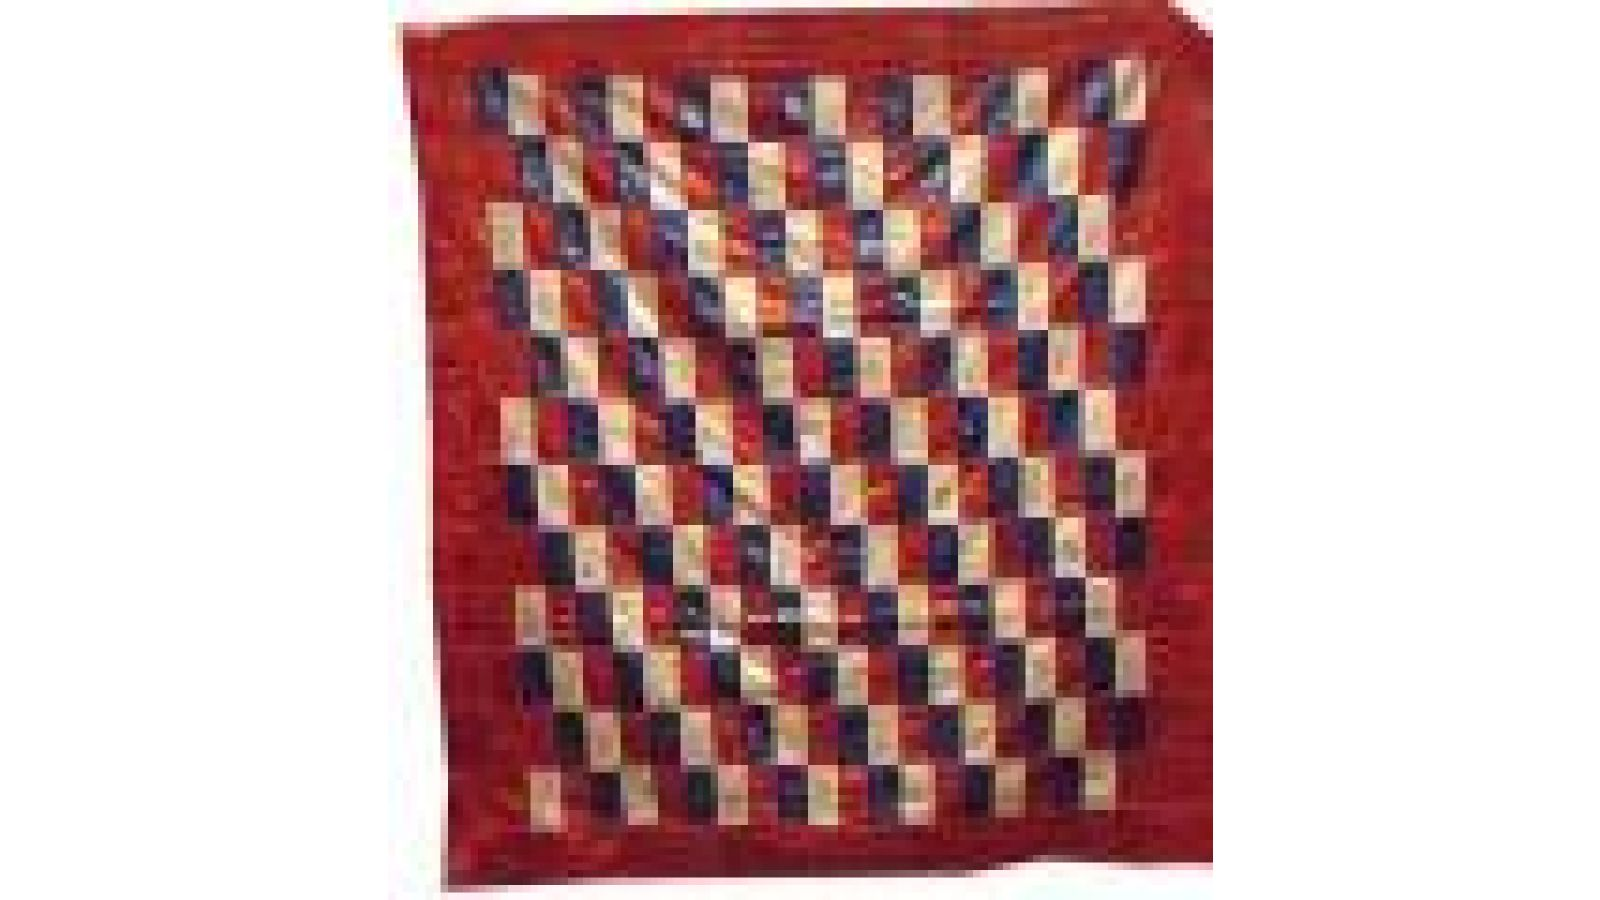 PRIZE RIBBONS PIECED QUILT